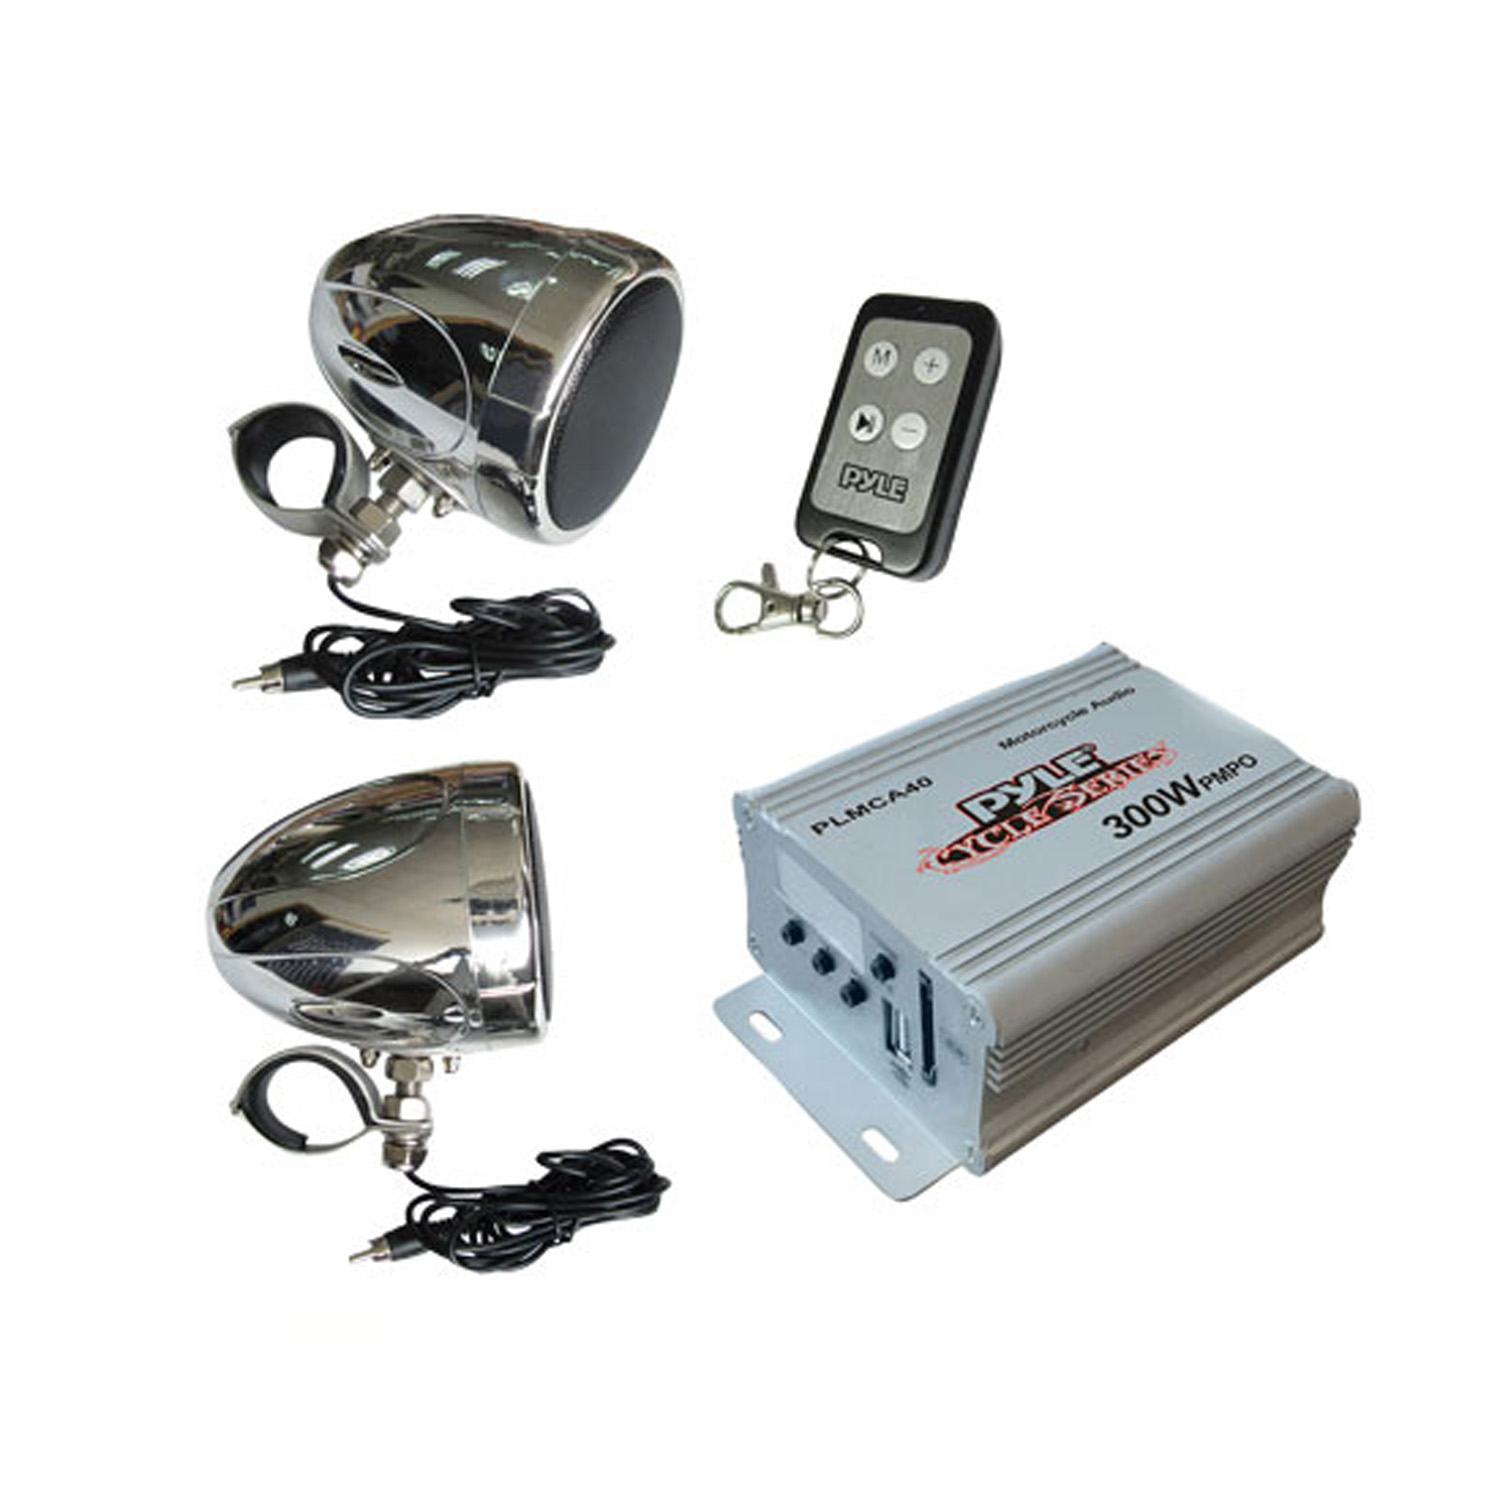 Pyle 300 Watts Motorcycle/ATV/Snowmobile Mount MP3/IOS/USB Amplifier with Dual